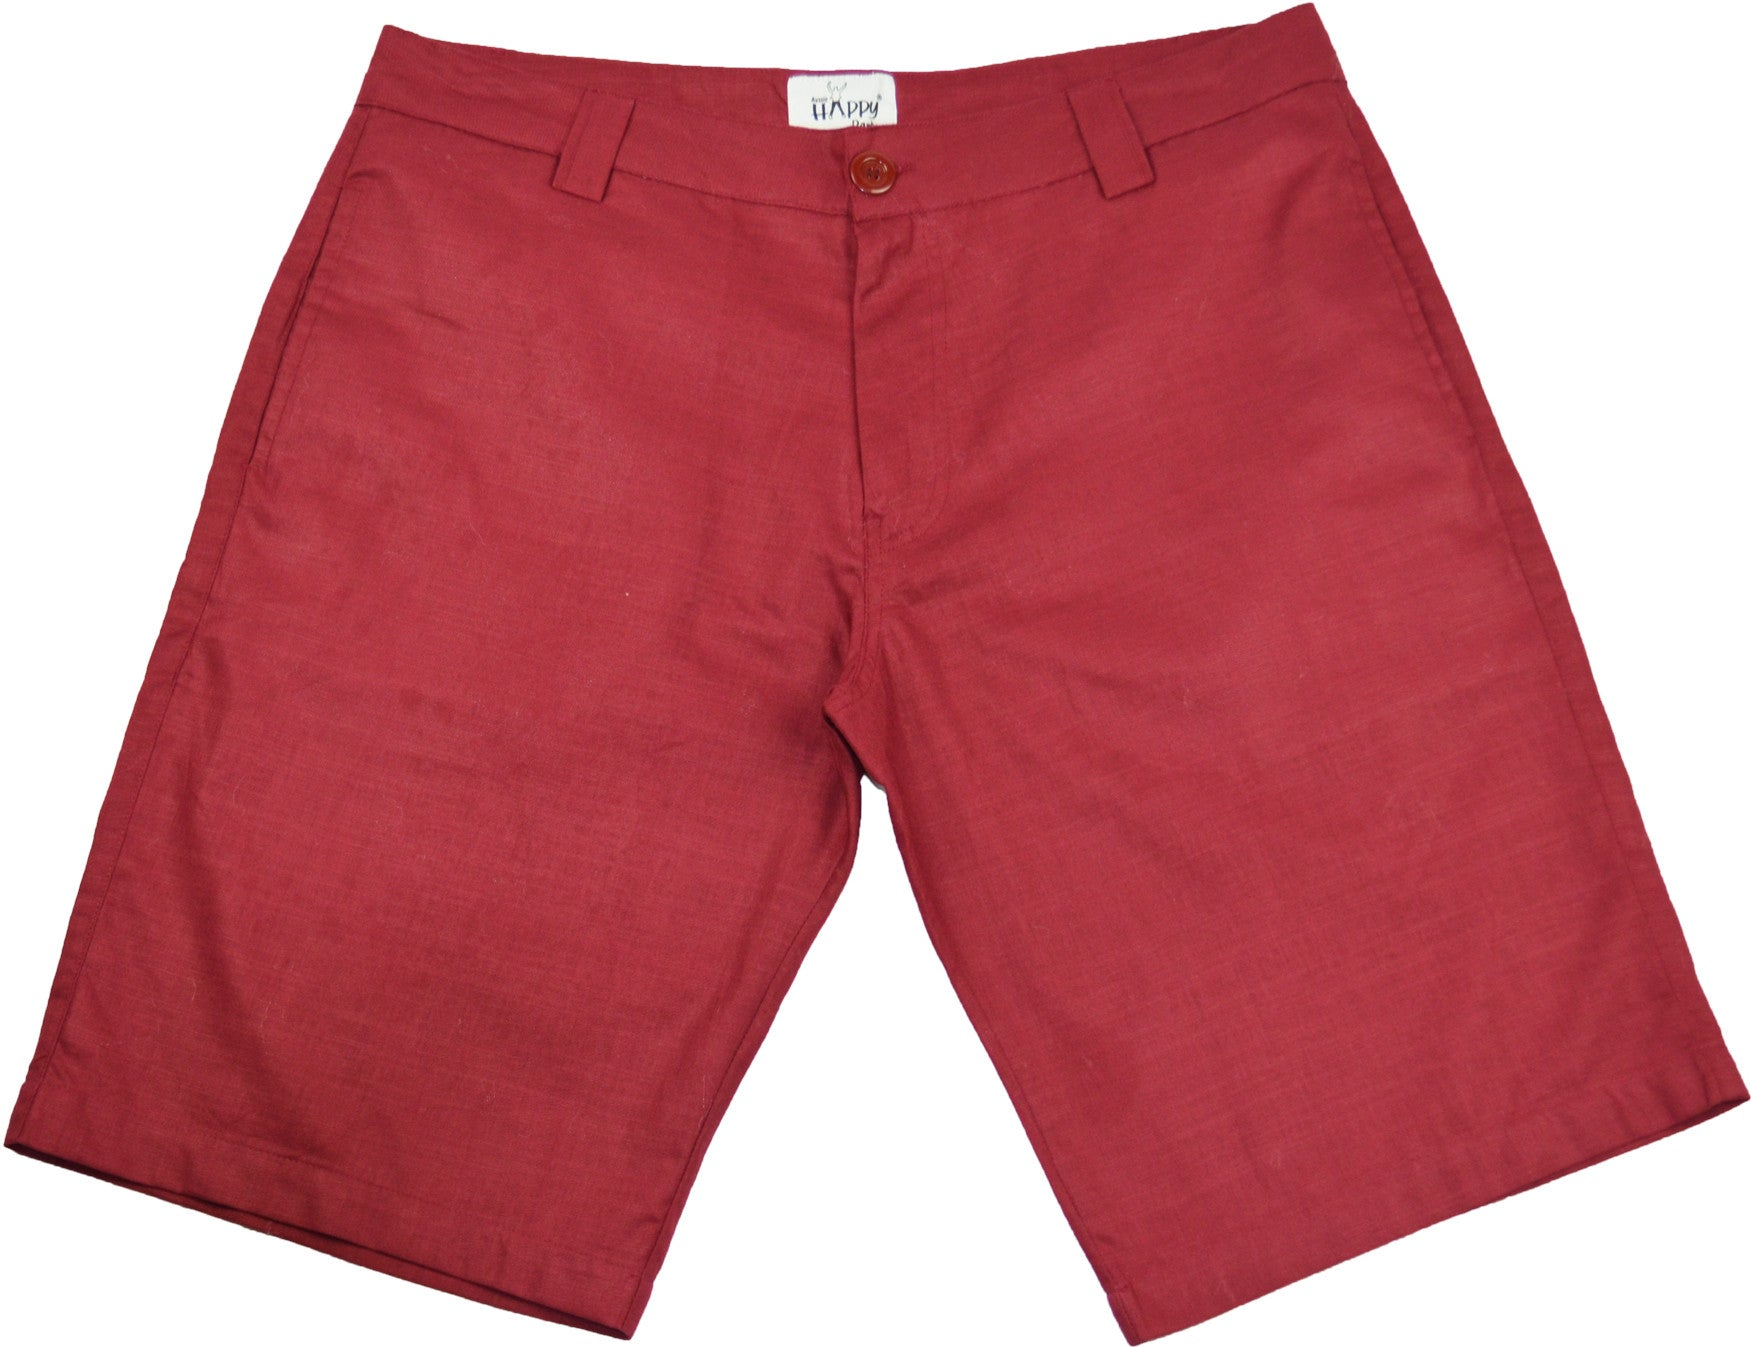 Burgundy Red Cotton BoardShorts - Happy Pants - 1